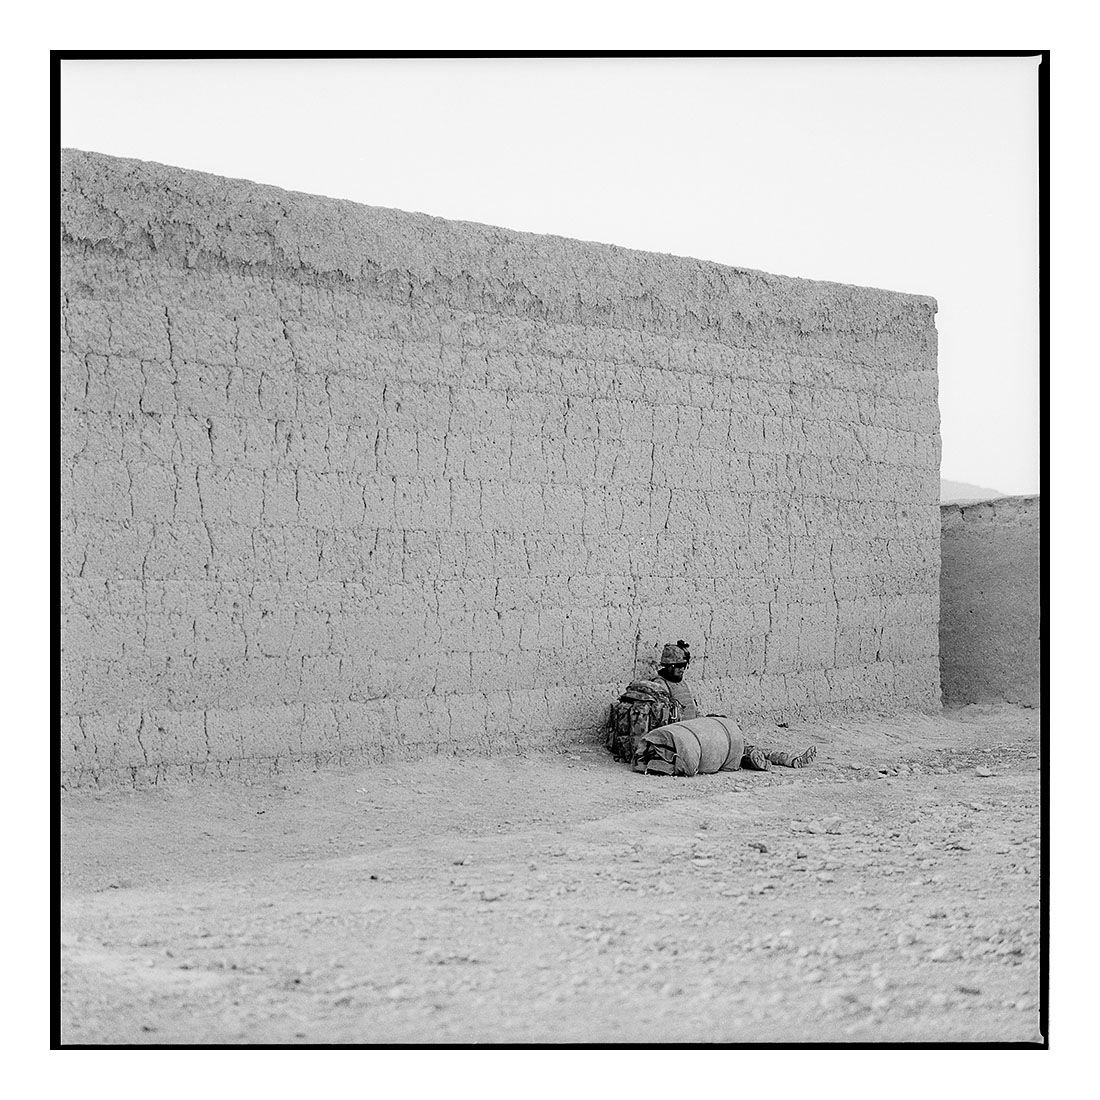 Mud Wall   (2011) Archival pigment prints on Ilford paper 40cm x 40cm | Edition of 25 + 3 Artist Proofs 100cm x 100cm | Edition of 10 + 3 Artist Proofs